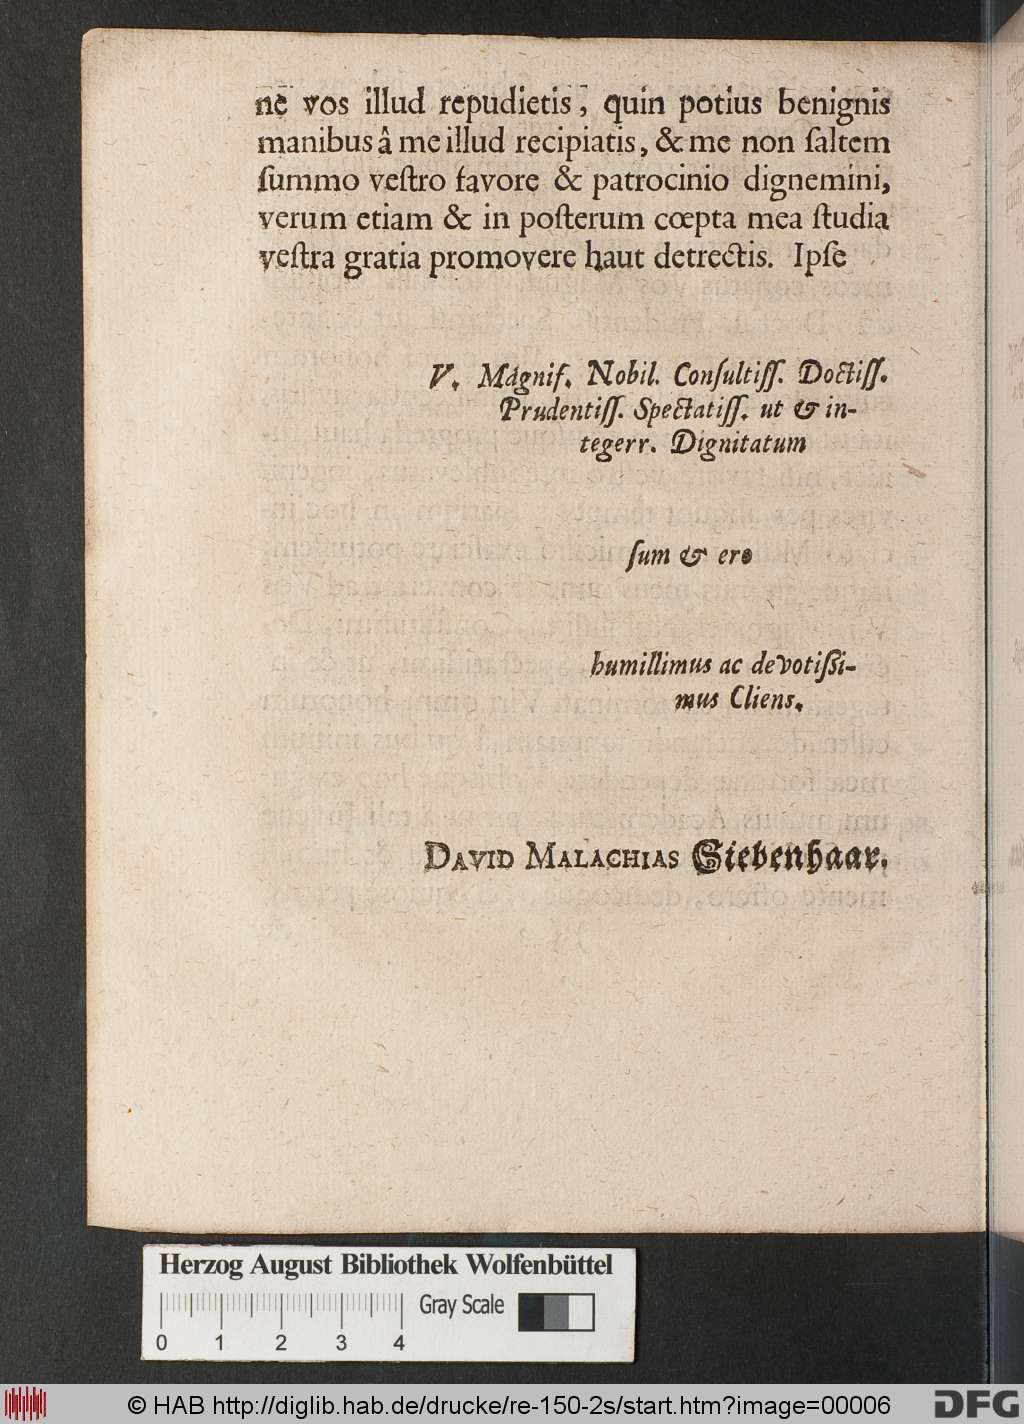 https://diglib.hab.de/drucke/re-150-2s/00006.jpg